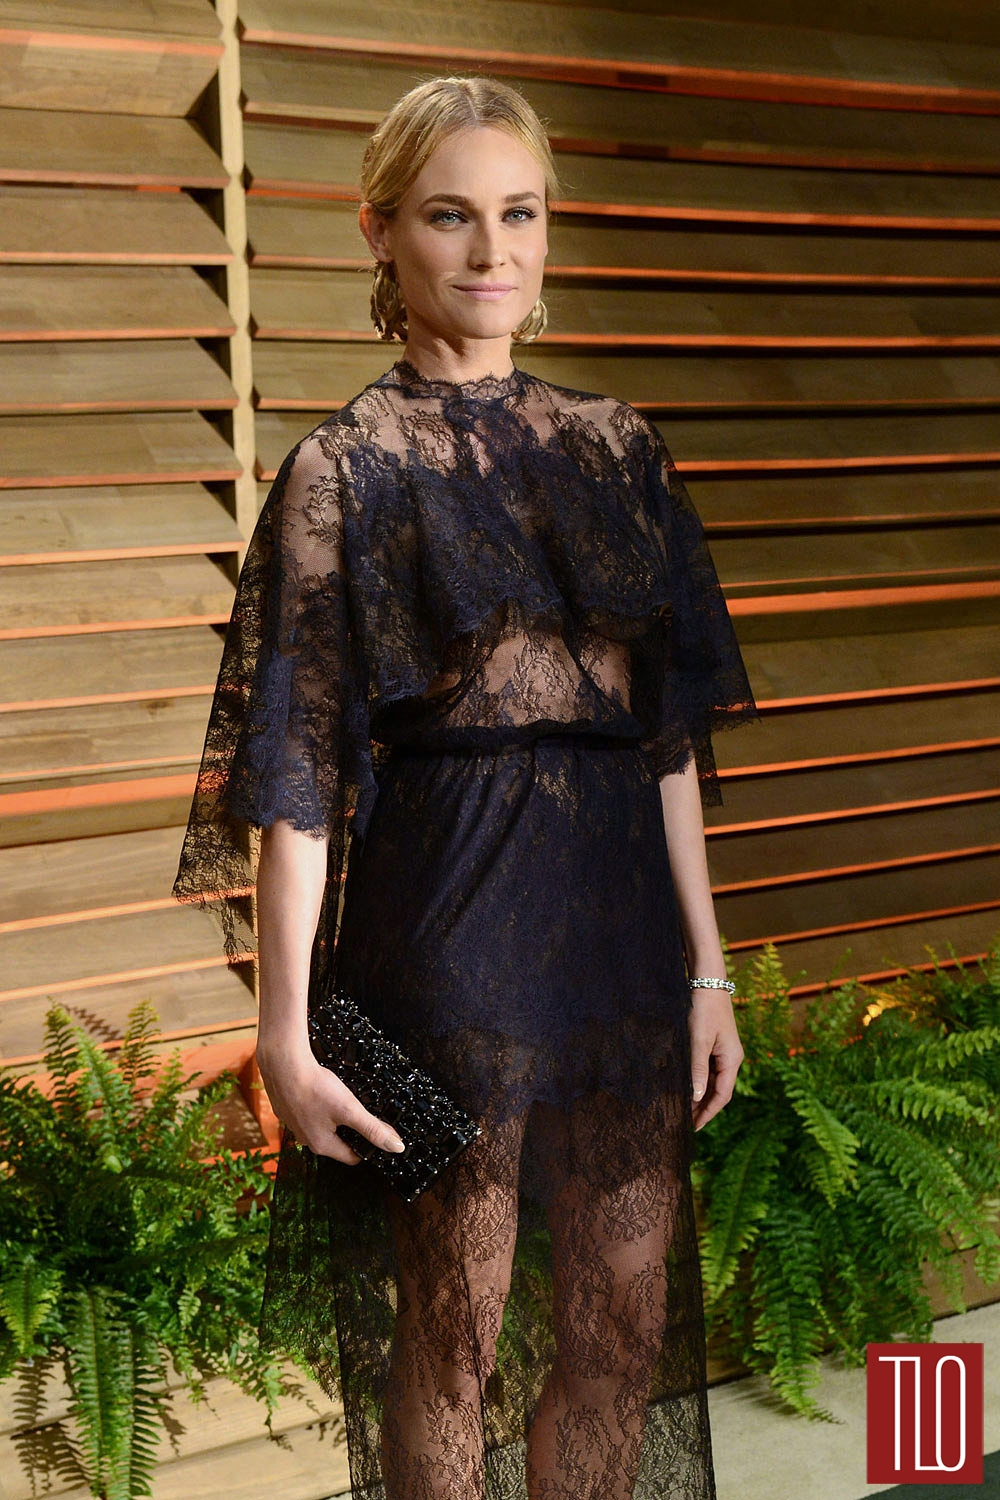 Diane-Kruger-Valentino-Couture-Oscars-2014-Vanity-Fair-Party-Tom-Lorenzo-Site-TLO (1)